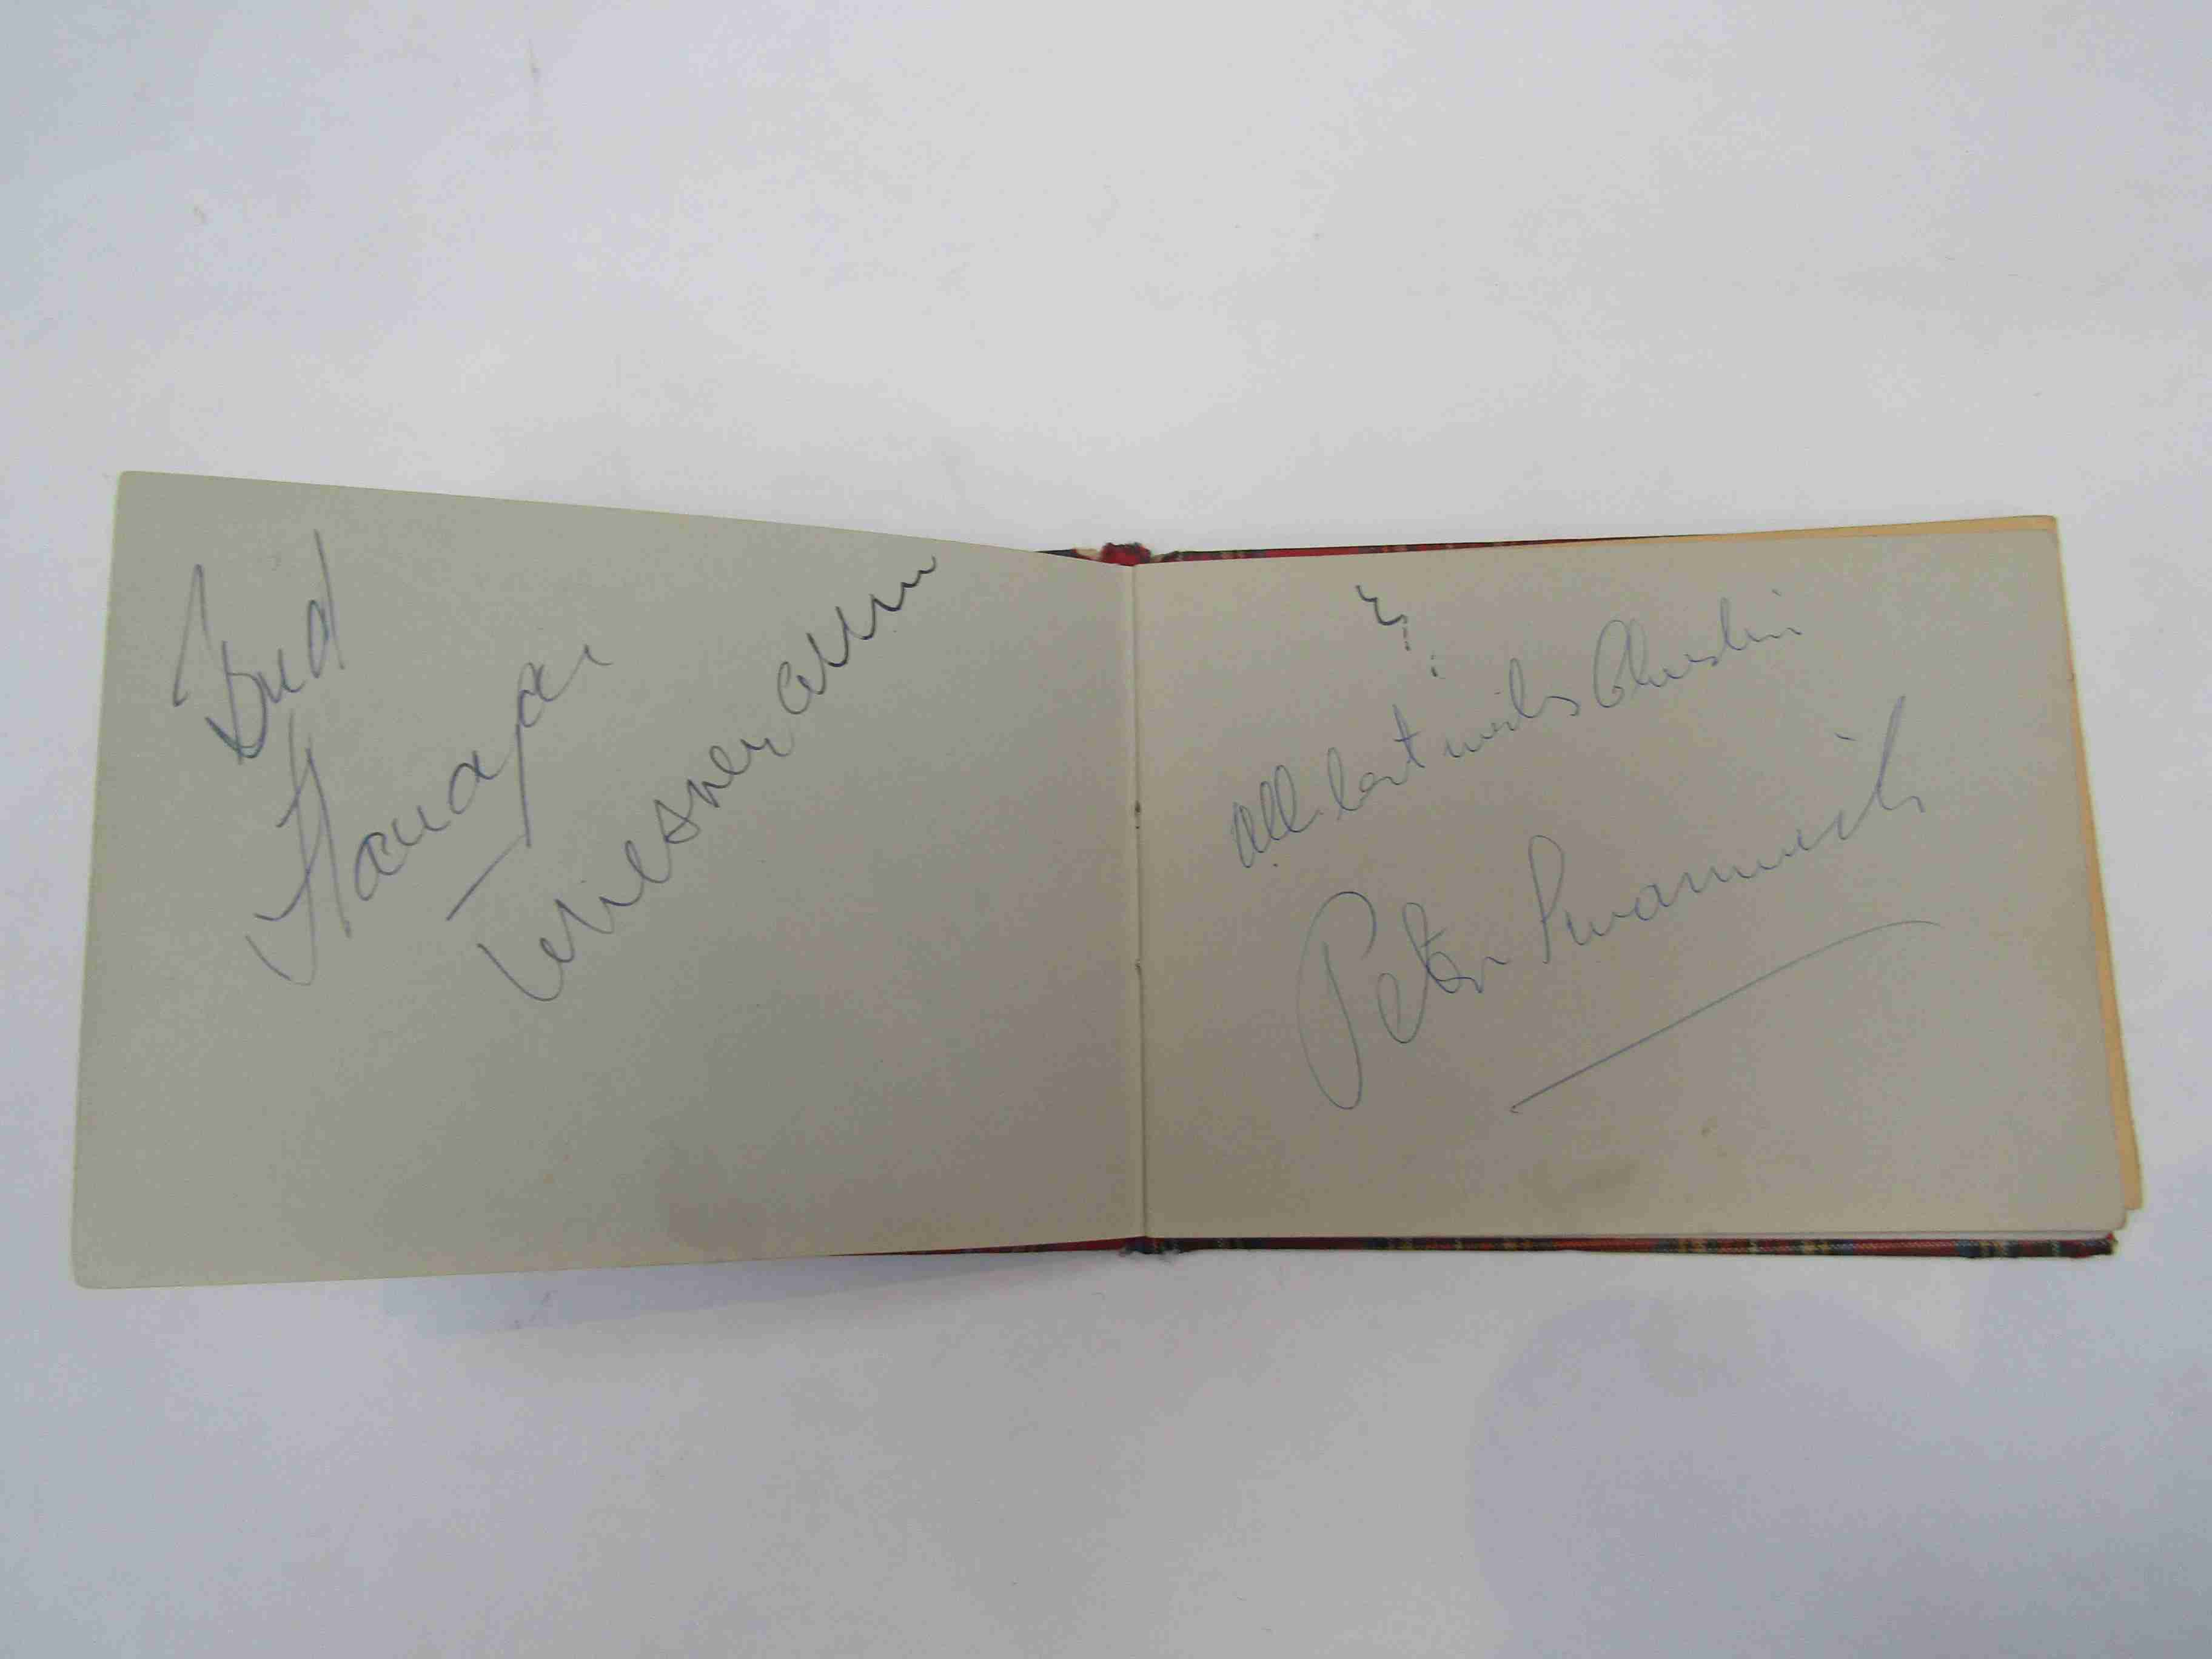 Two 1950s/60s autograph books containing autographs by Benny Hill, Honor Blackman, Barbara Shelley, - Image 18 of 34